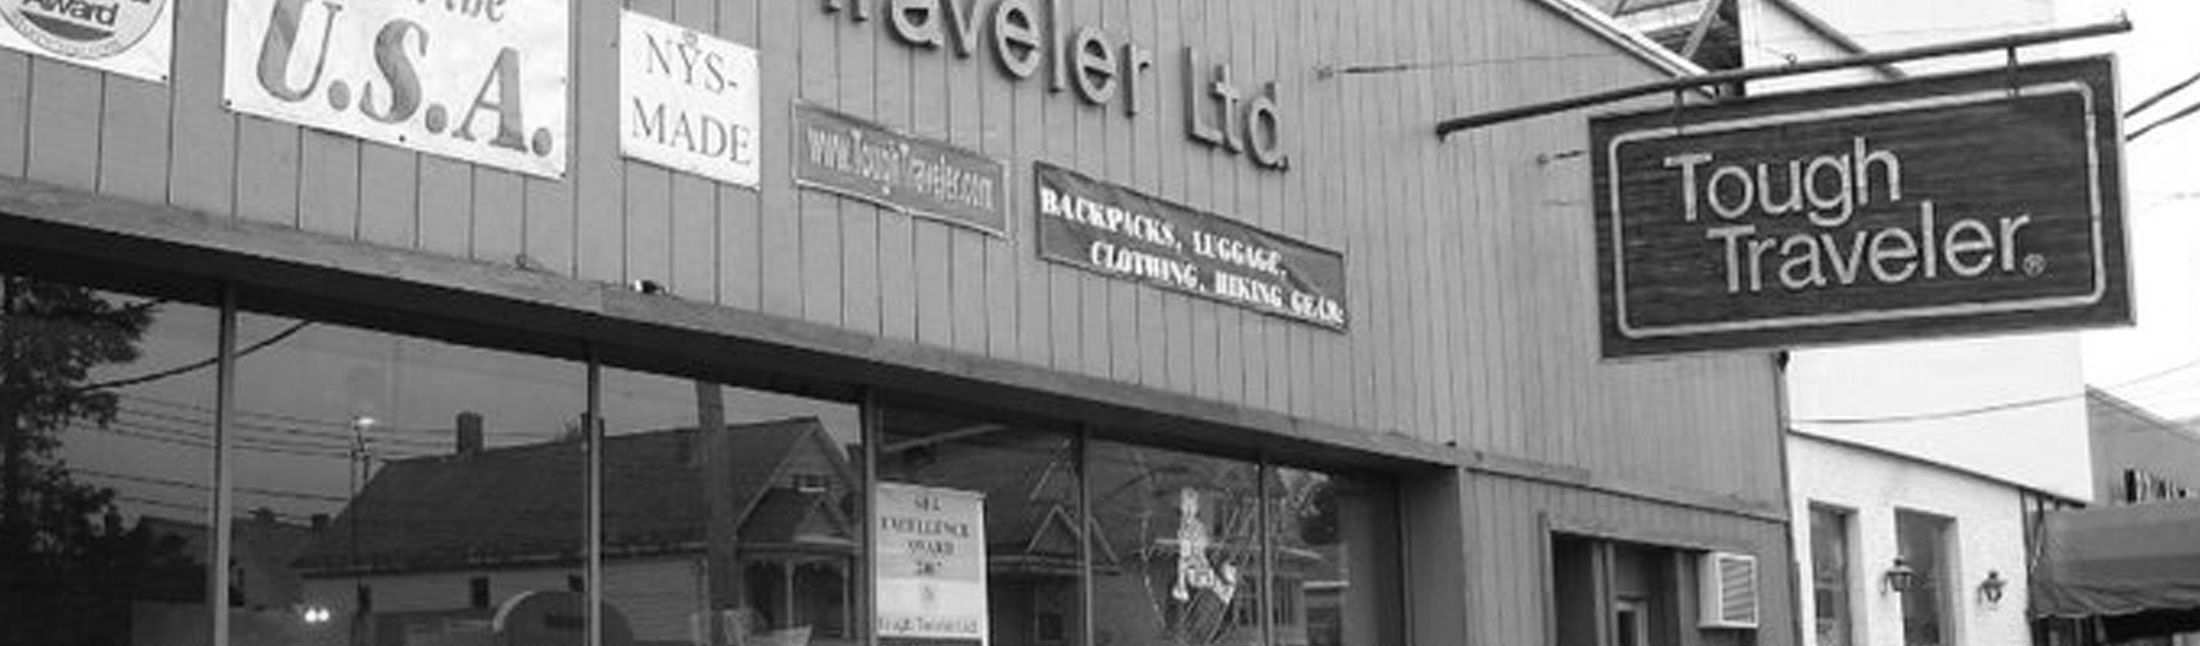 Featured Company: Tough Traveler